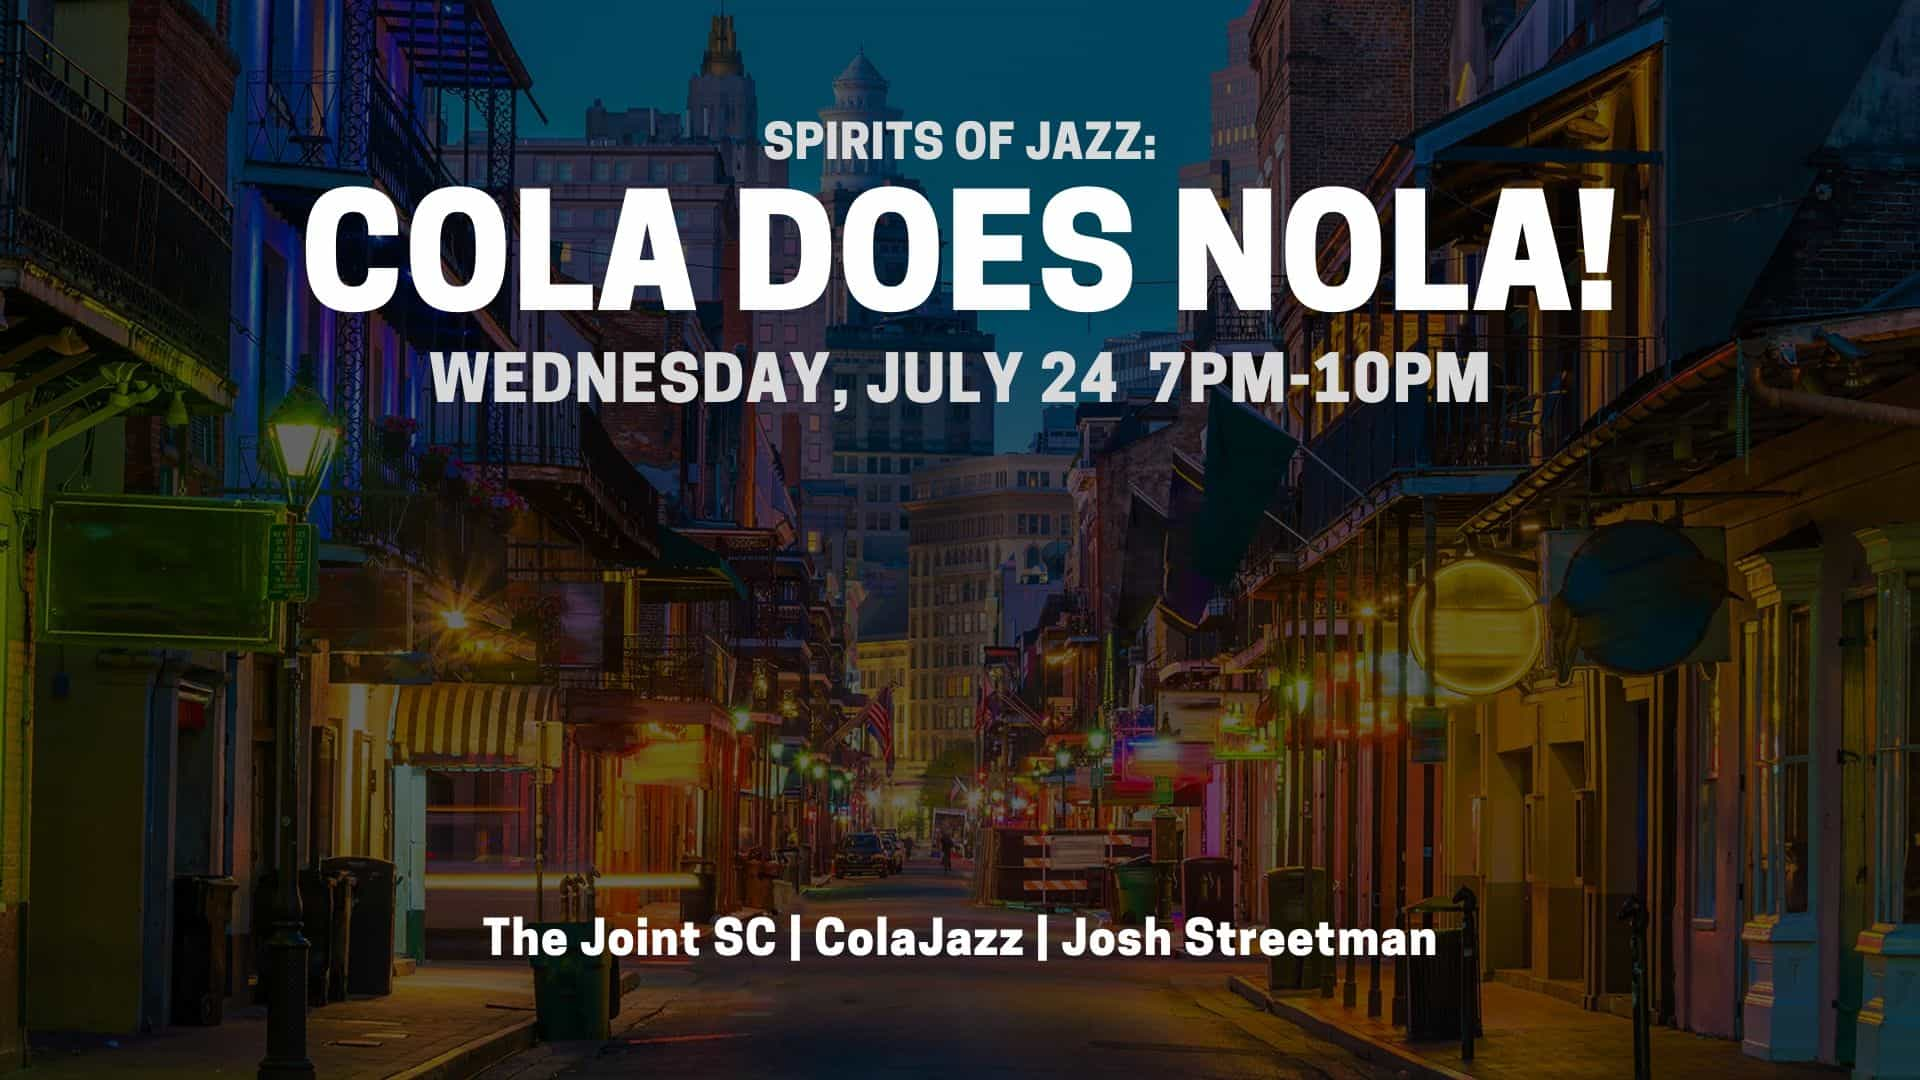 Cola Does Nola